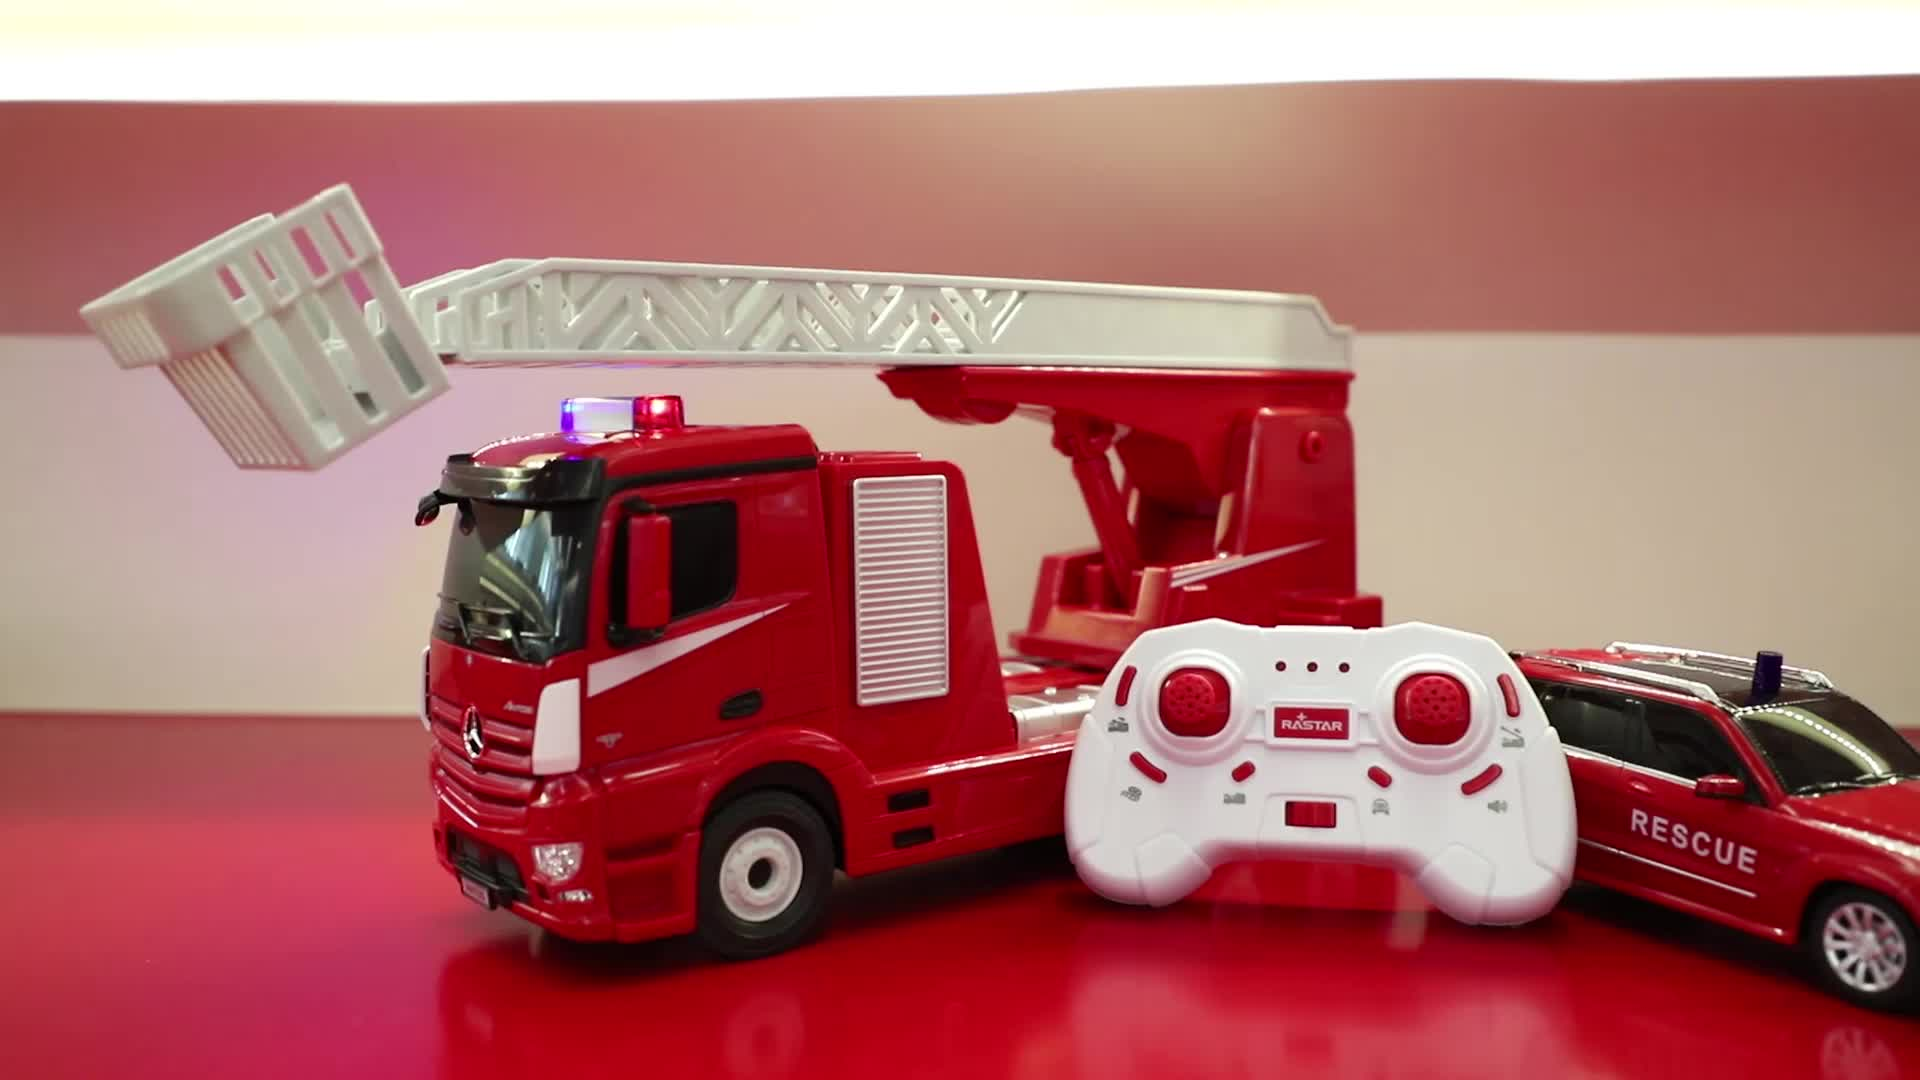 RASTAR gift set Mercedes Benz fire engine rescue car rc toy